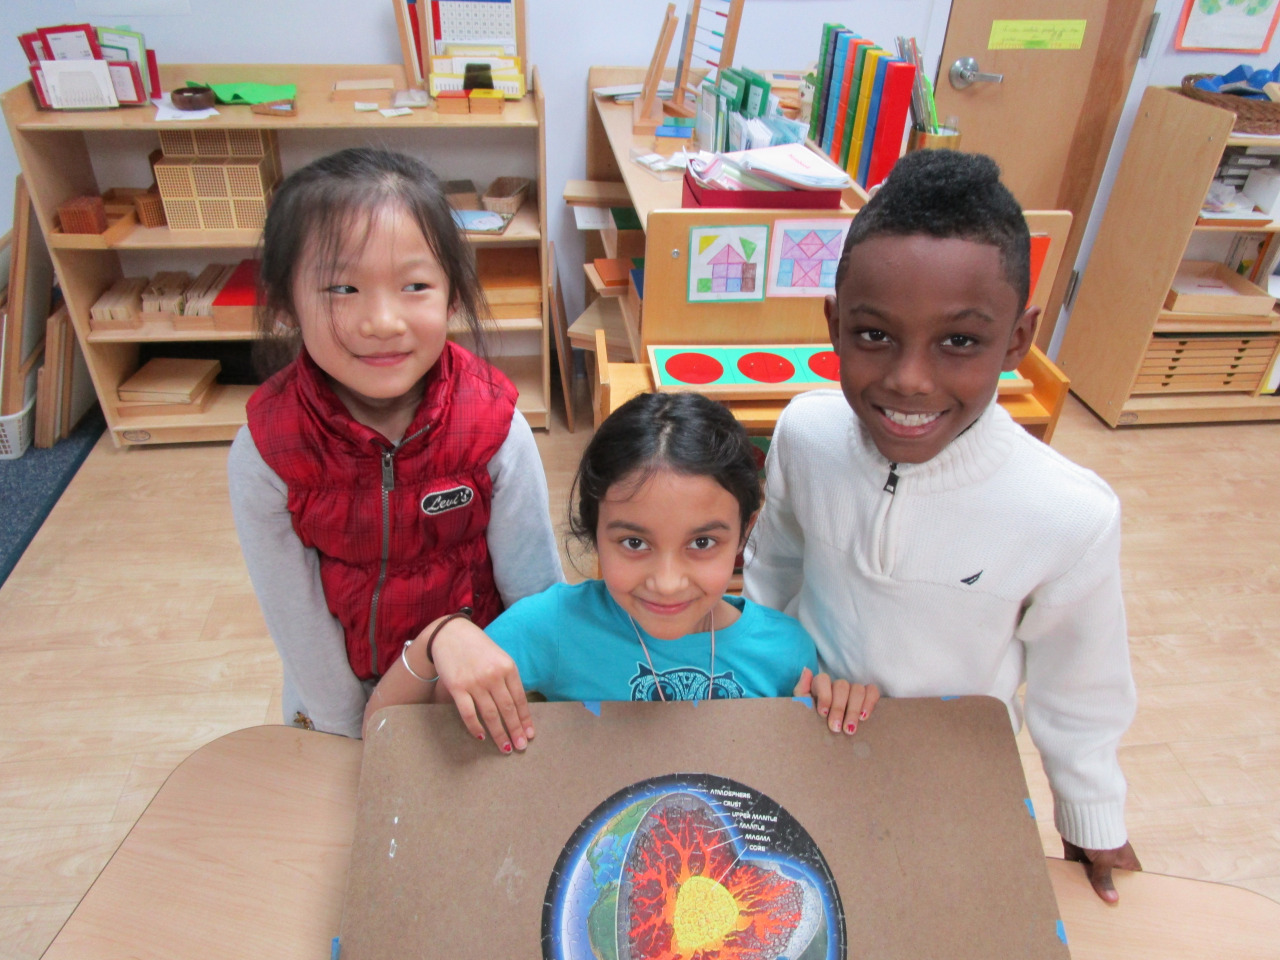 Lower Elementary North students were excited to share their completed puzzle illustrating the layers of the Earth.